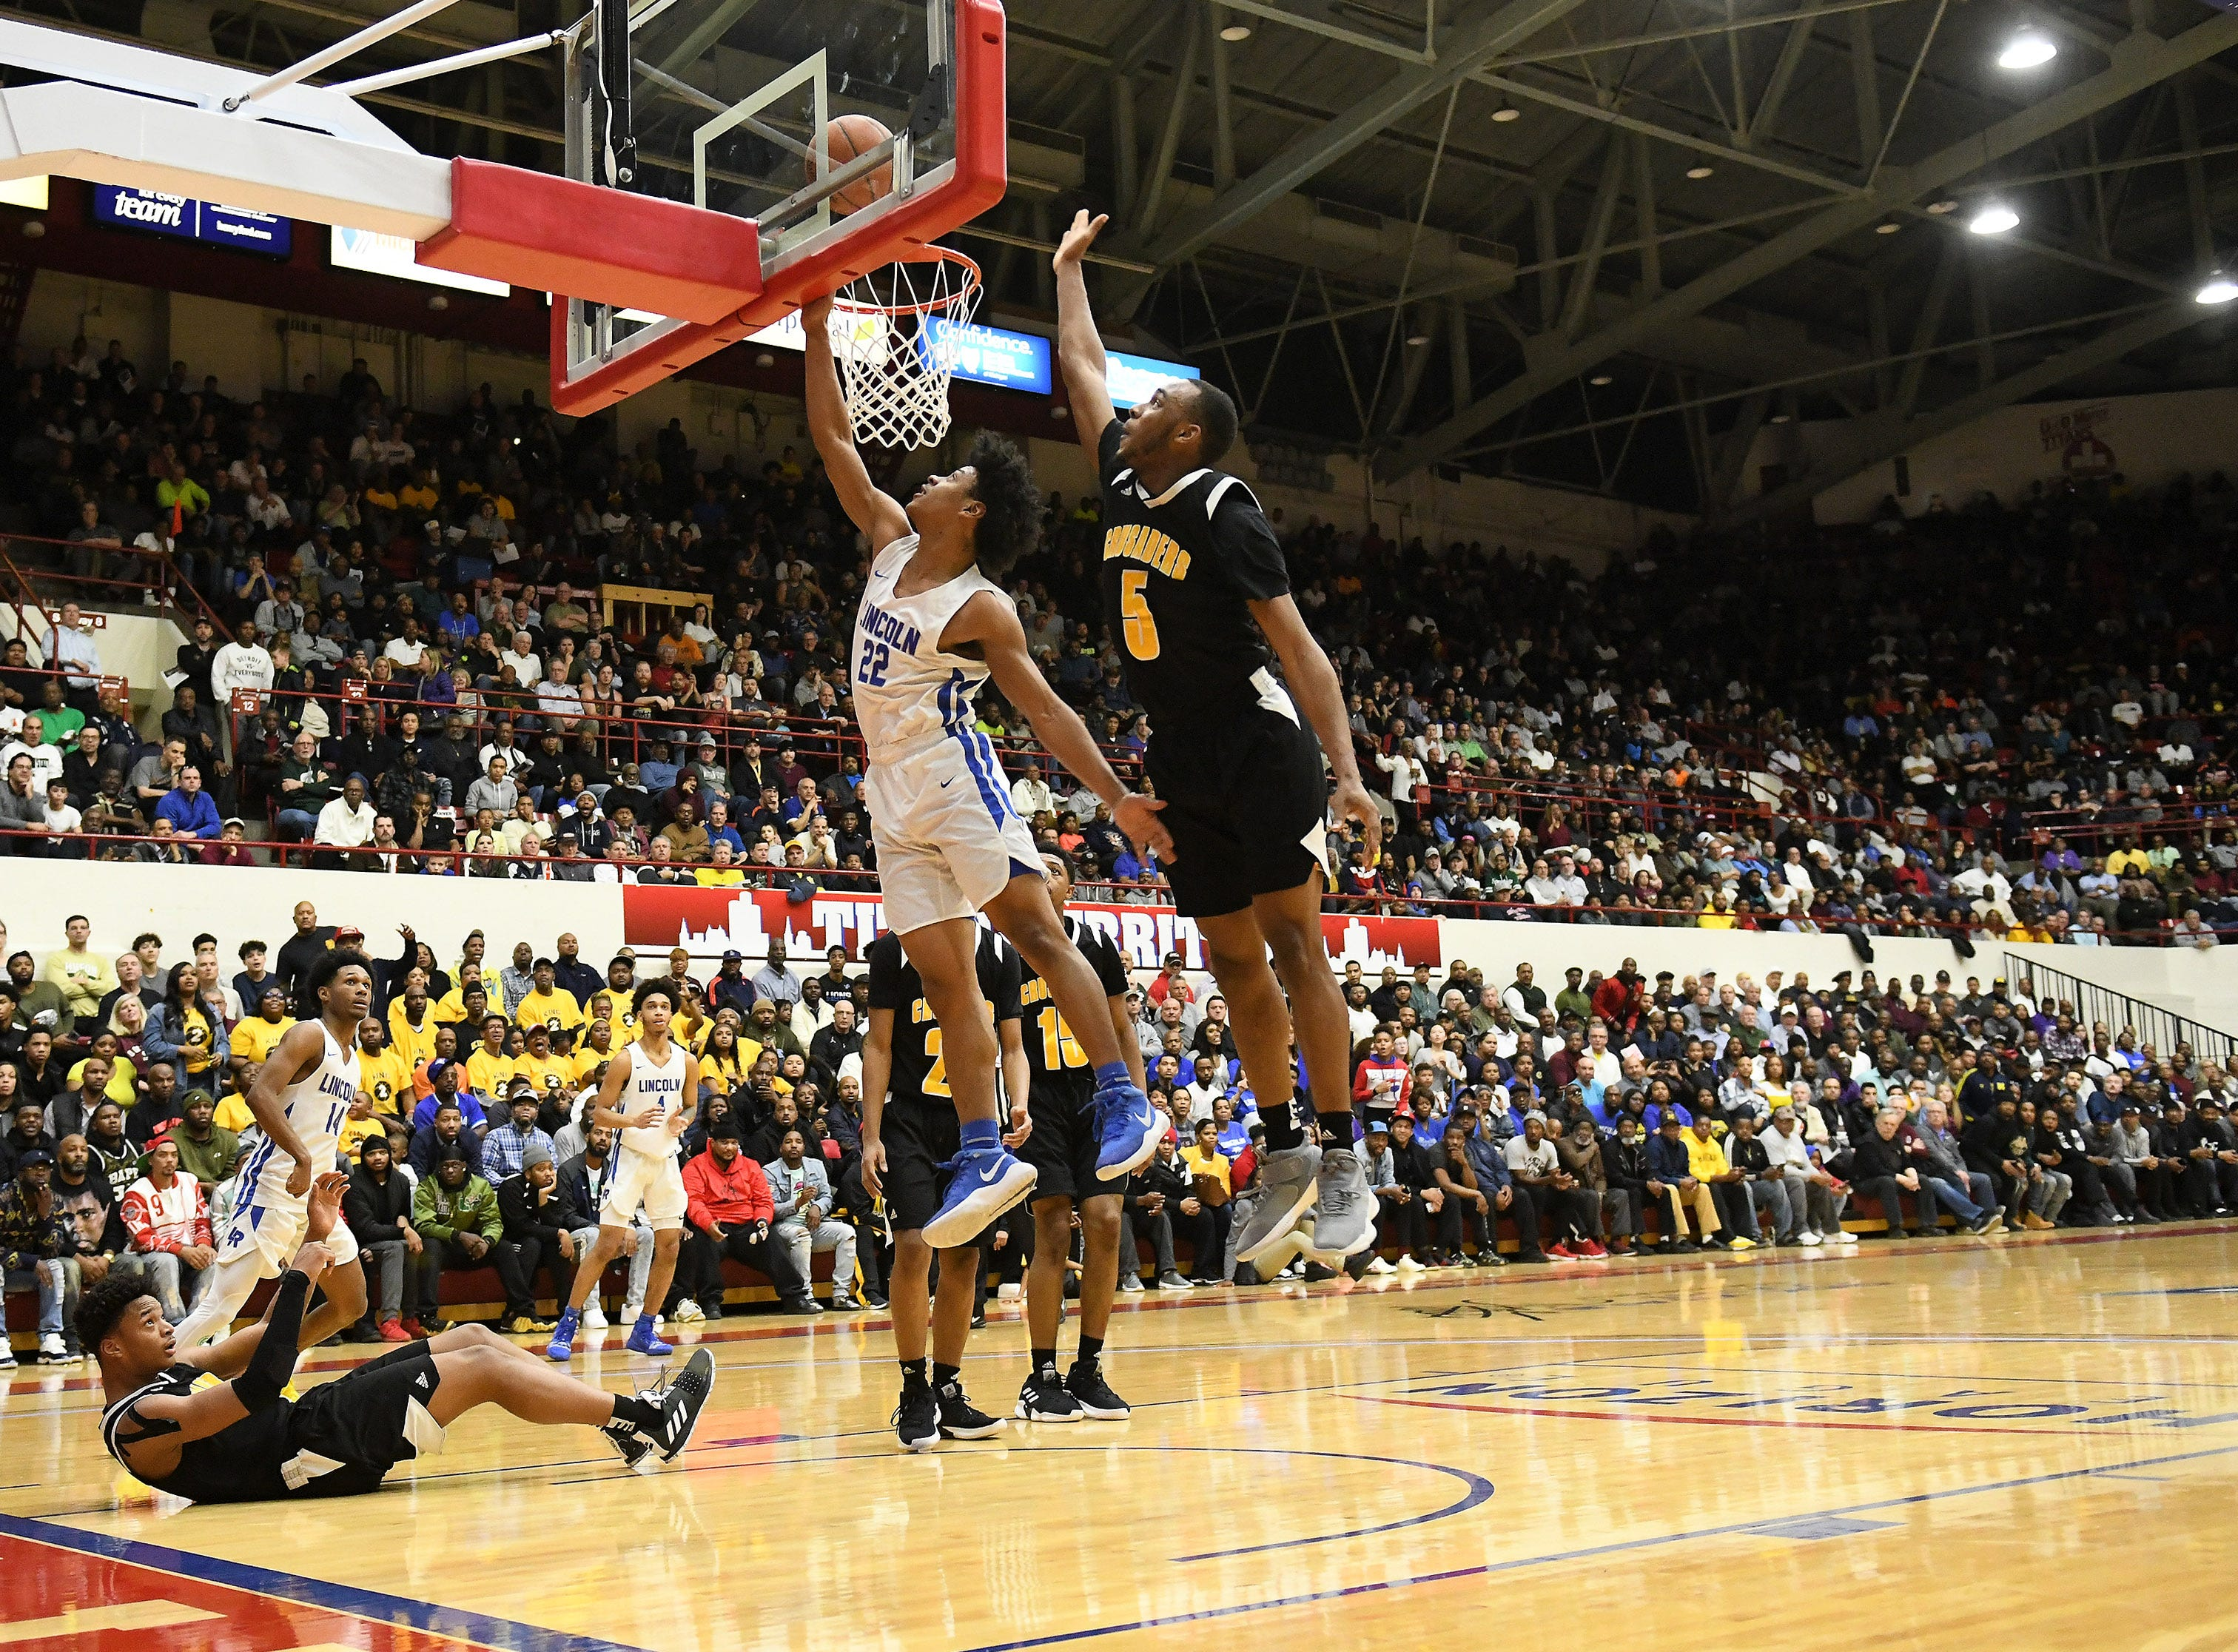 Lincoln's Ibn Abdul-Rahman (22) puts up a shot under King's John Massey, Jr. in the second half.